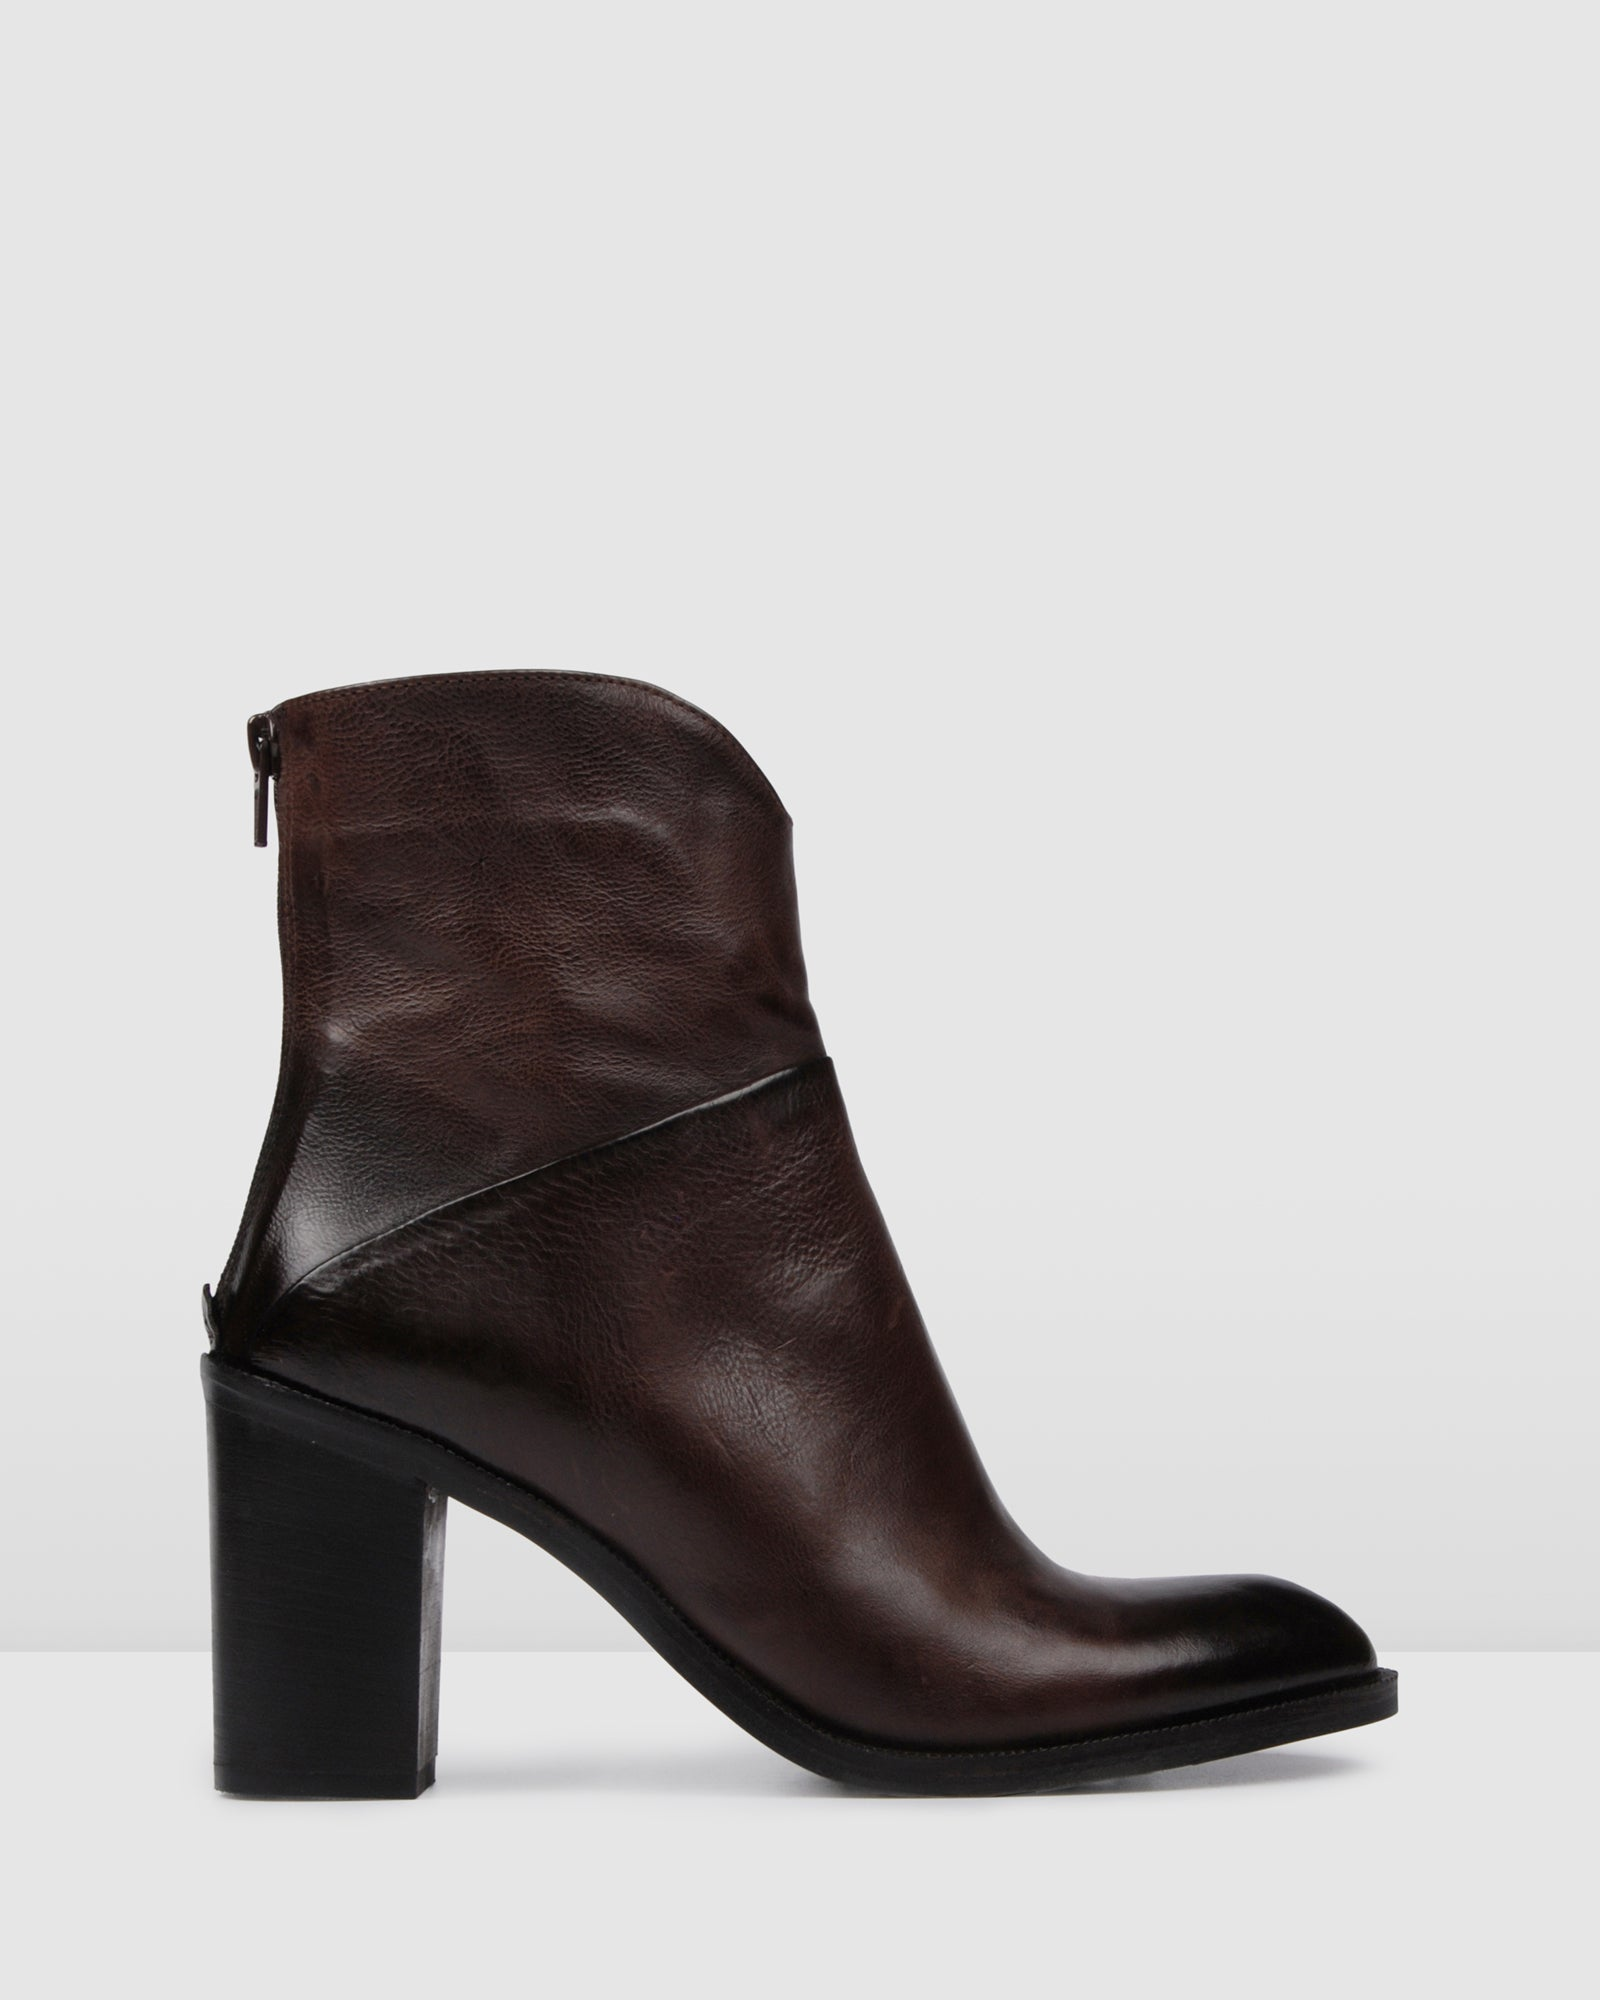 HANIA HIGH ANKLE BOOTS DARK BROWN LEATHER